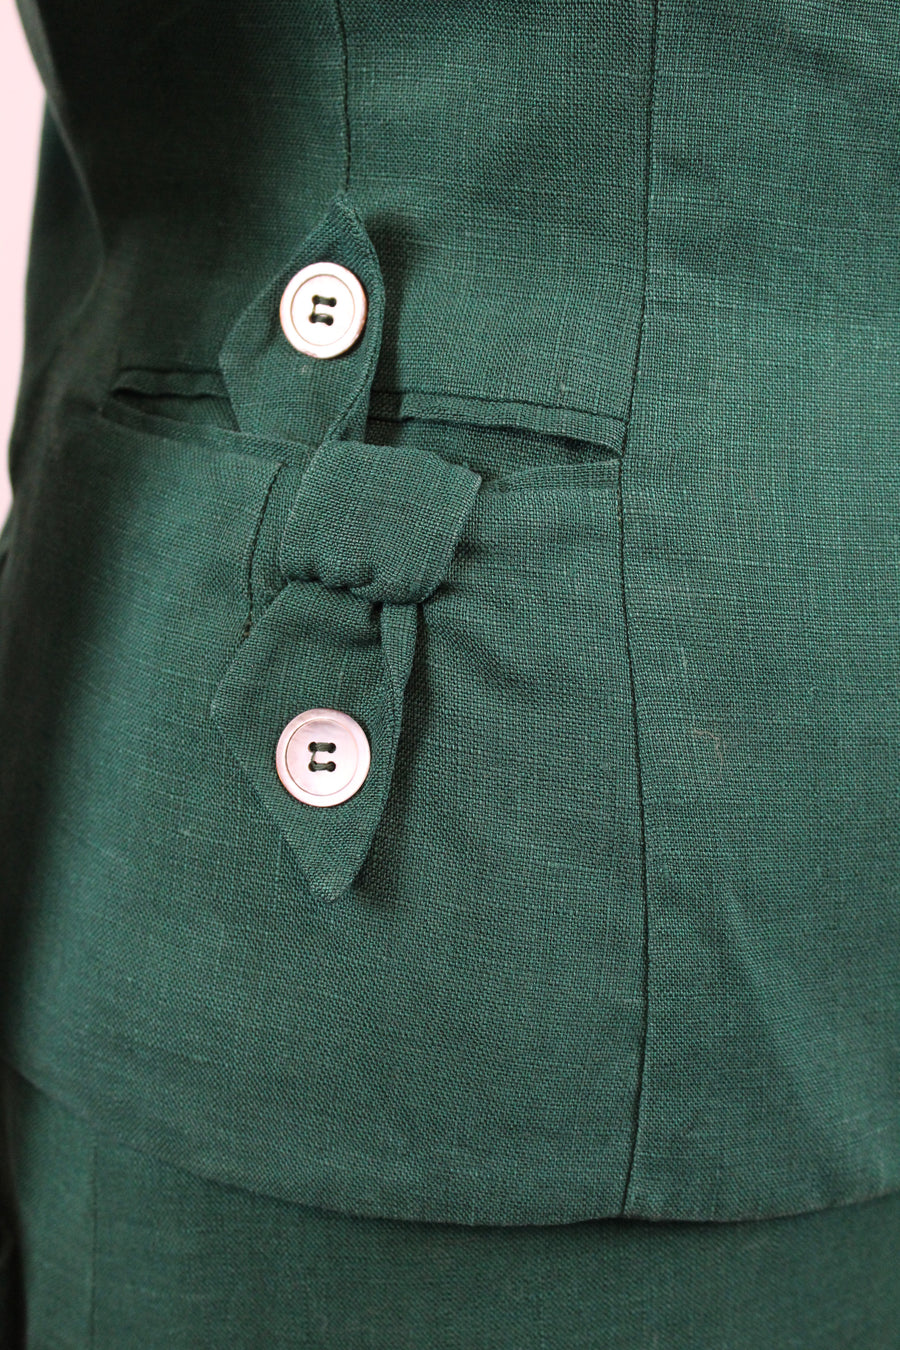 1940's green linen suit medium | vintage Nat Gaynes jacket and skirt | new in